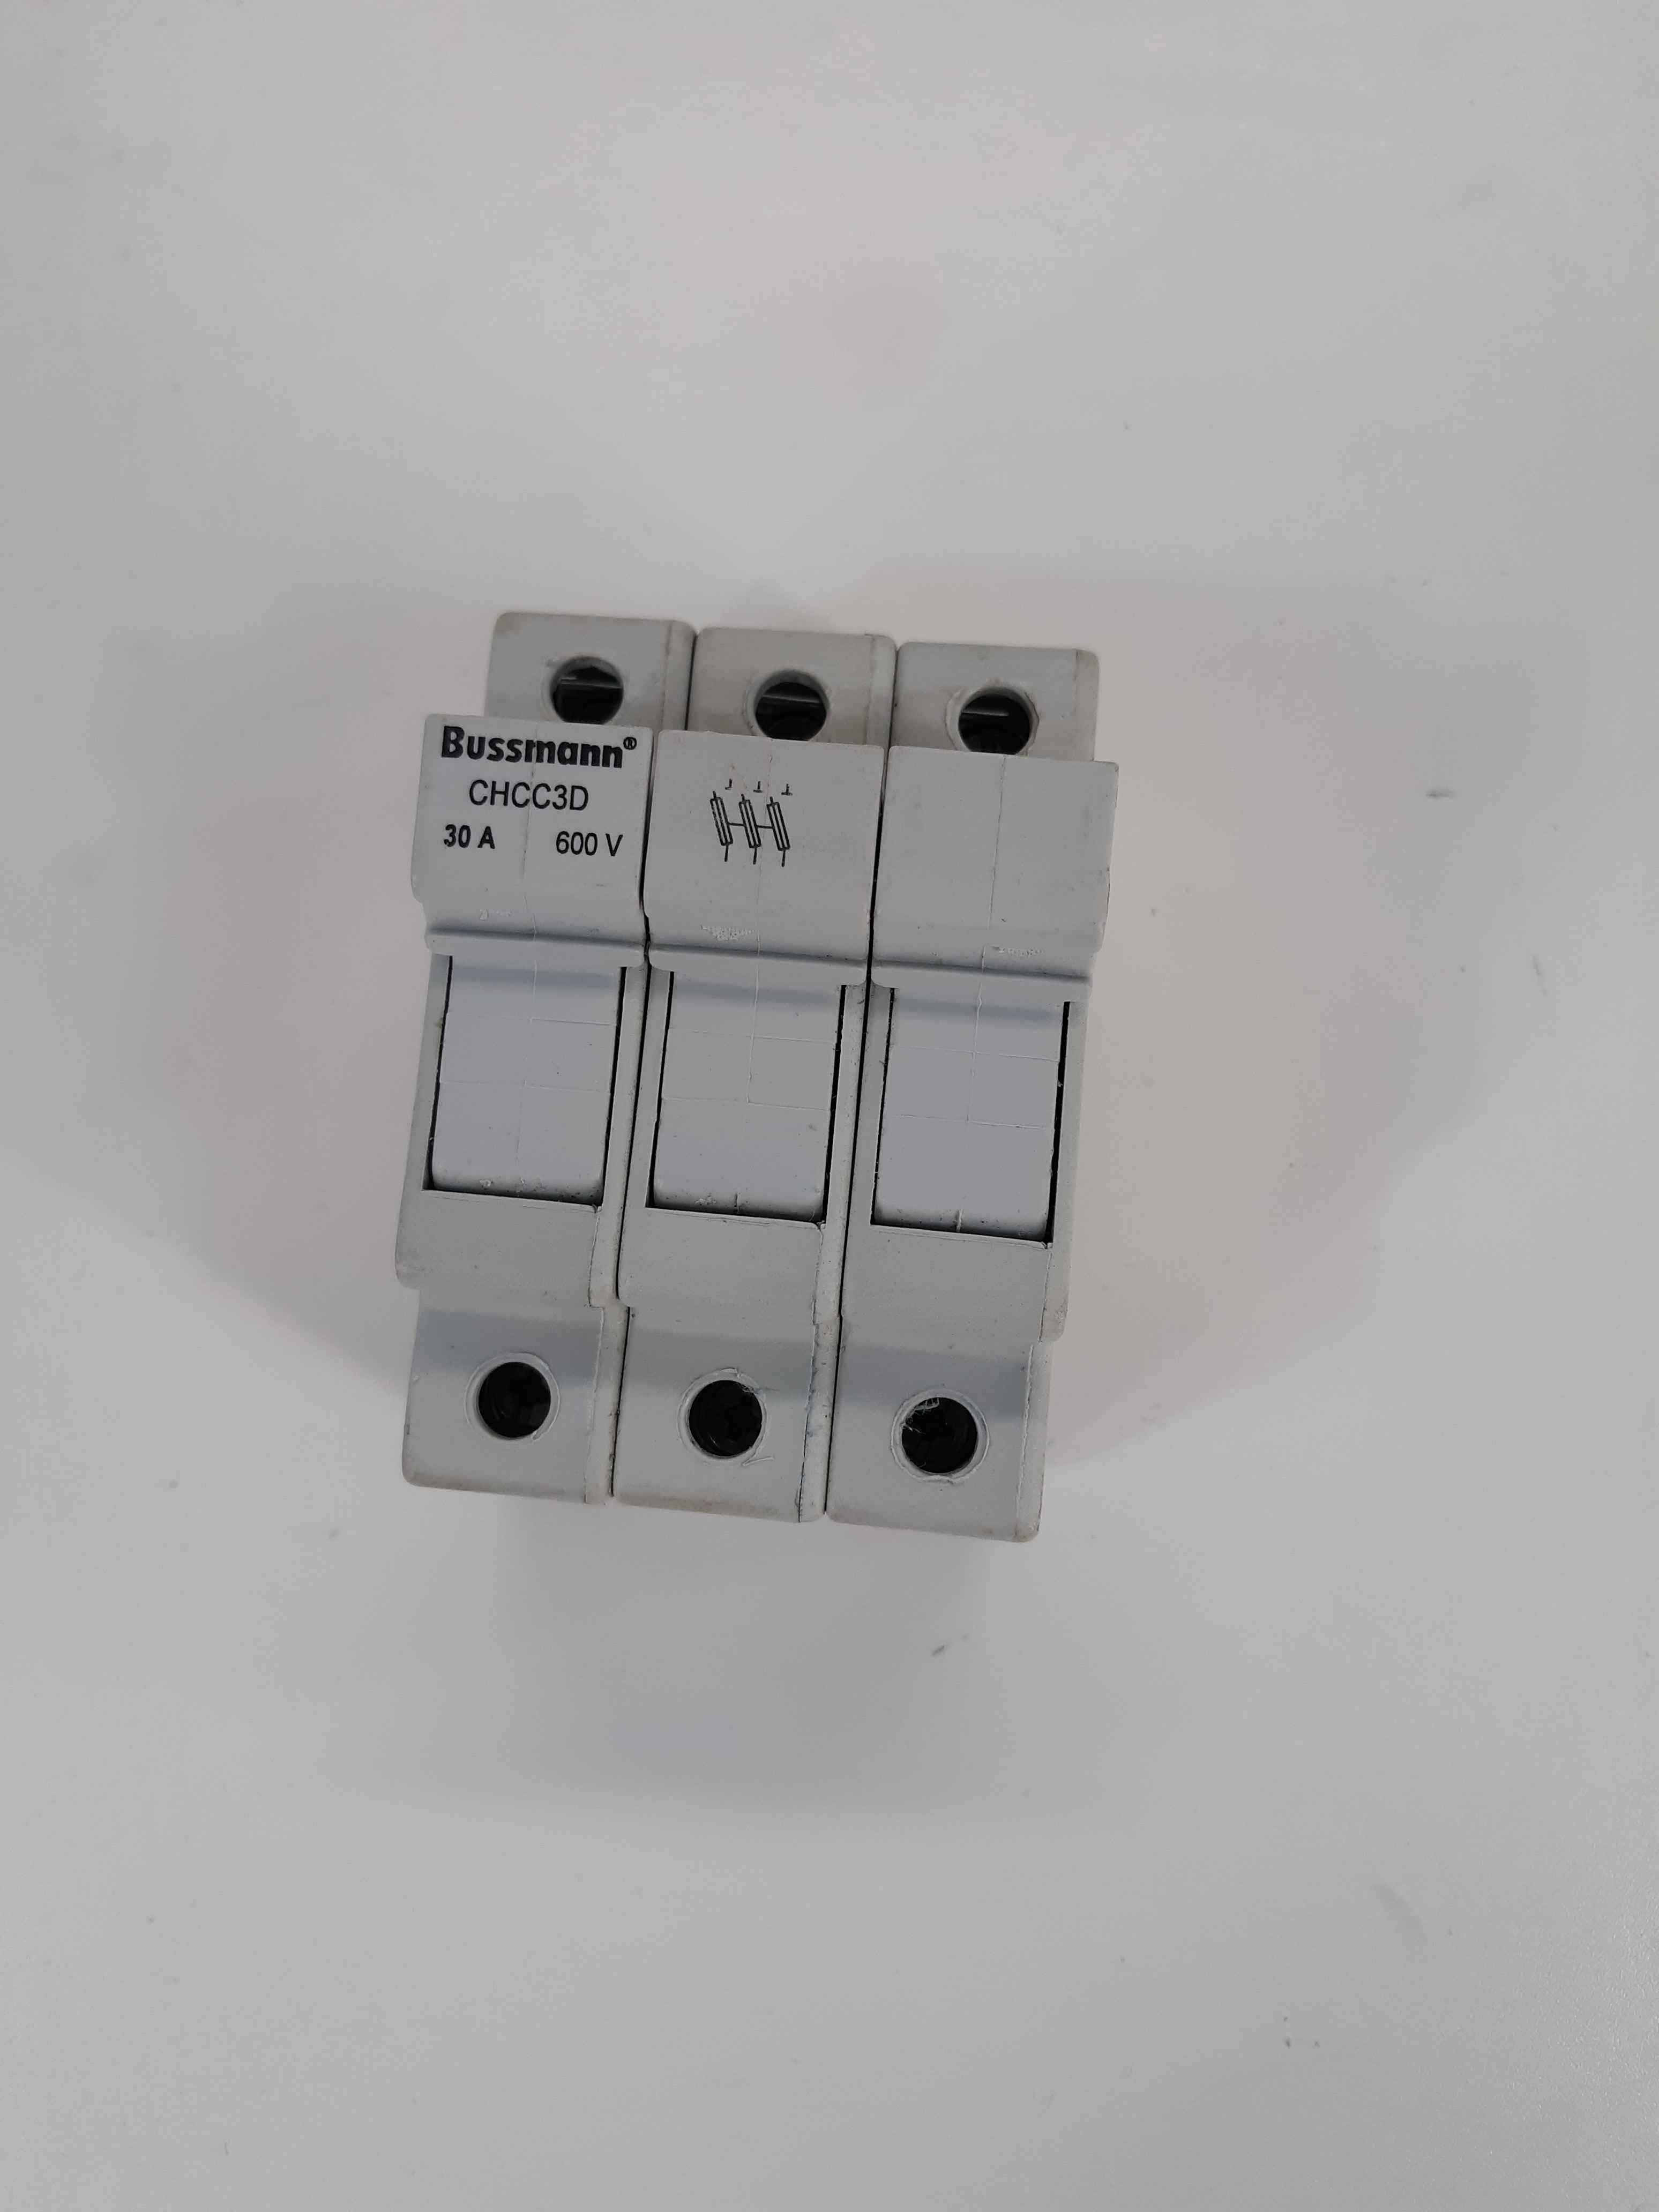 Busman CHCC3D 3 Pole Fuse Holder 30A 600V